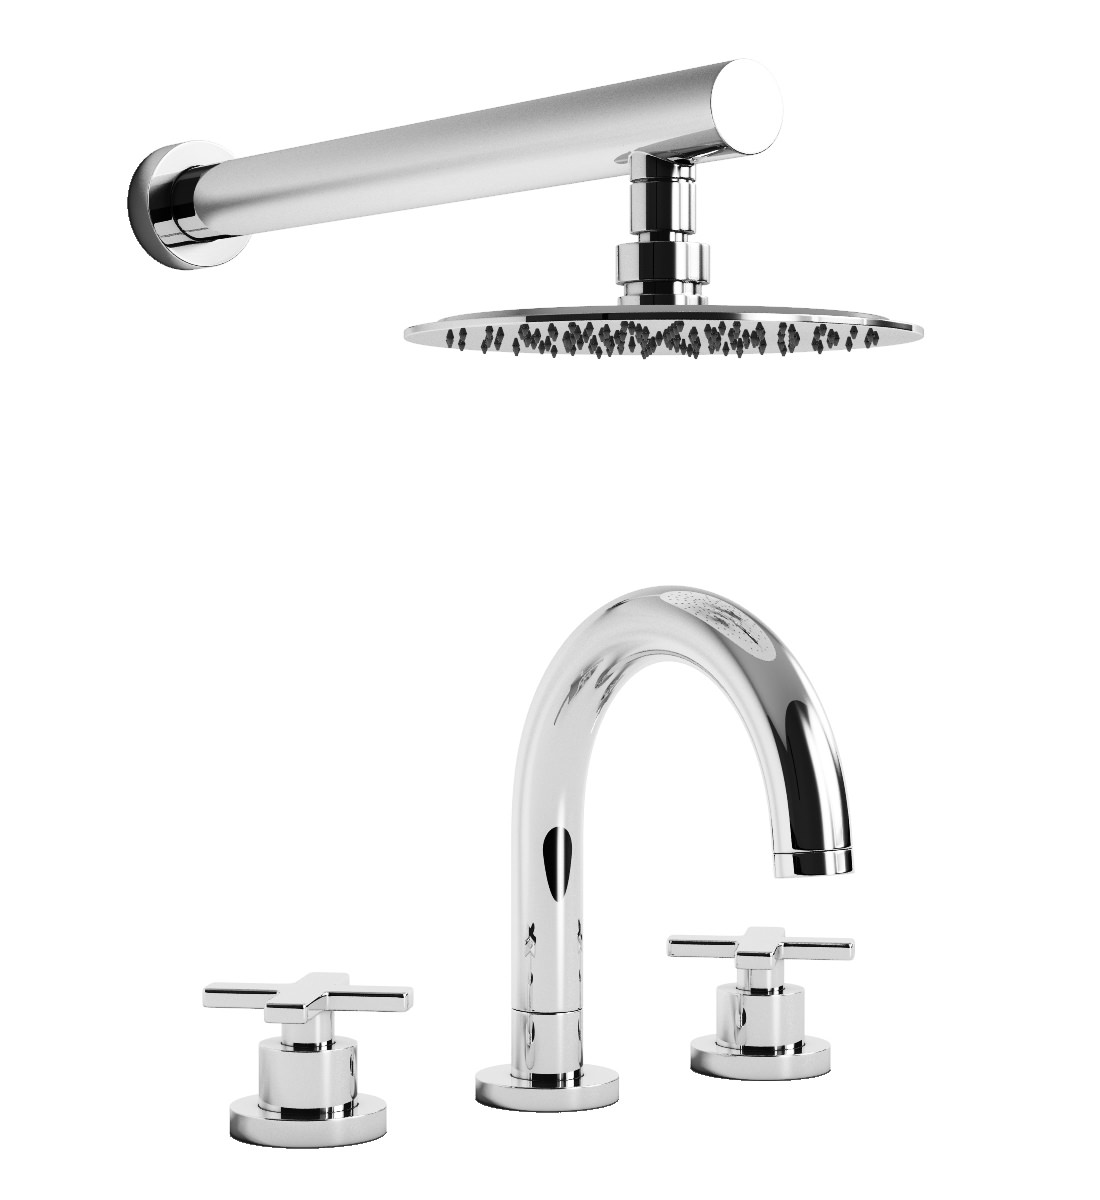 Abode Serenitie Thermostatic 3TH Bath Mixer Tap And